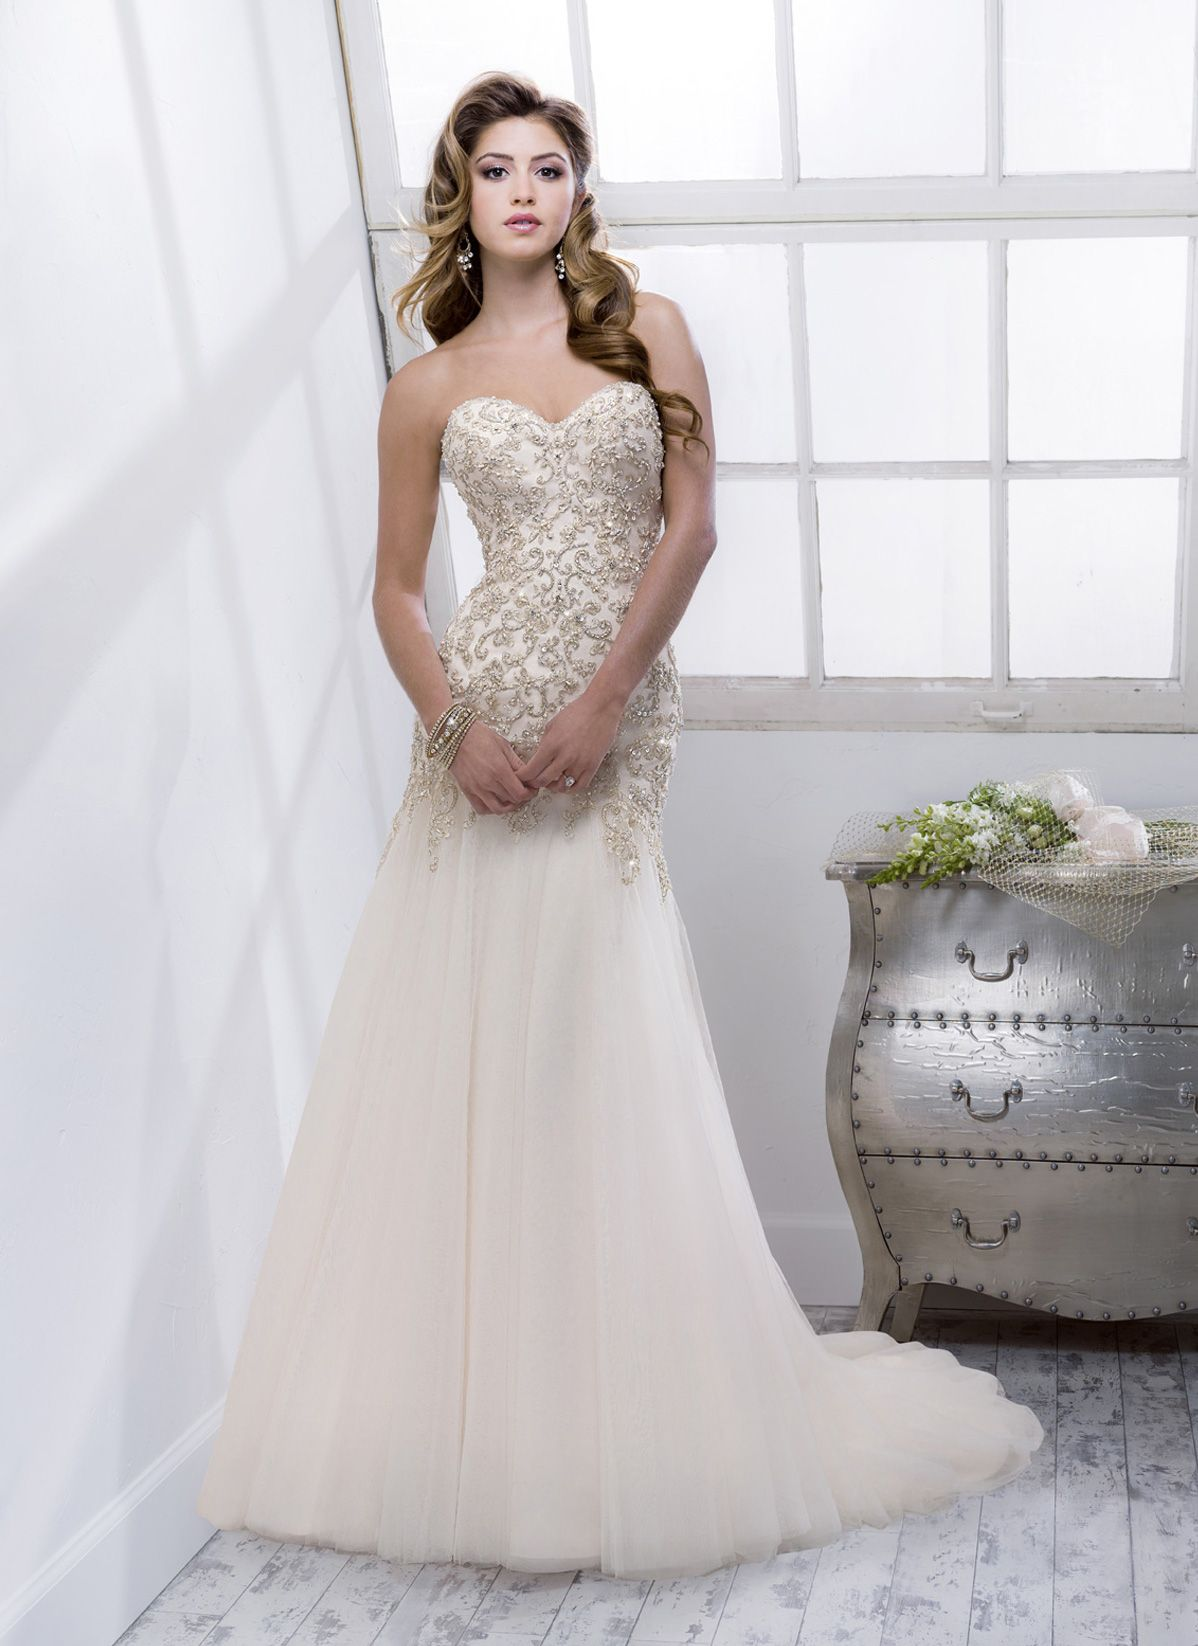 Quincy by Sottero and Midgley at Brides of Berkhamsted